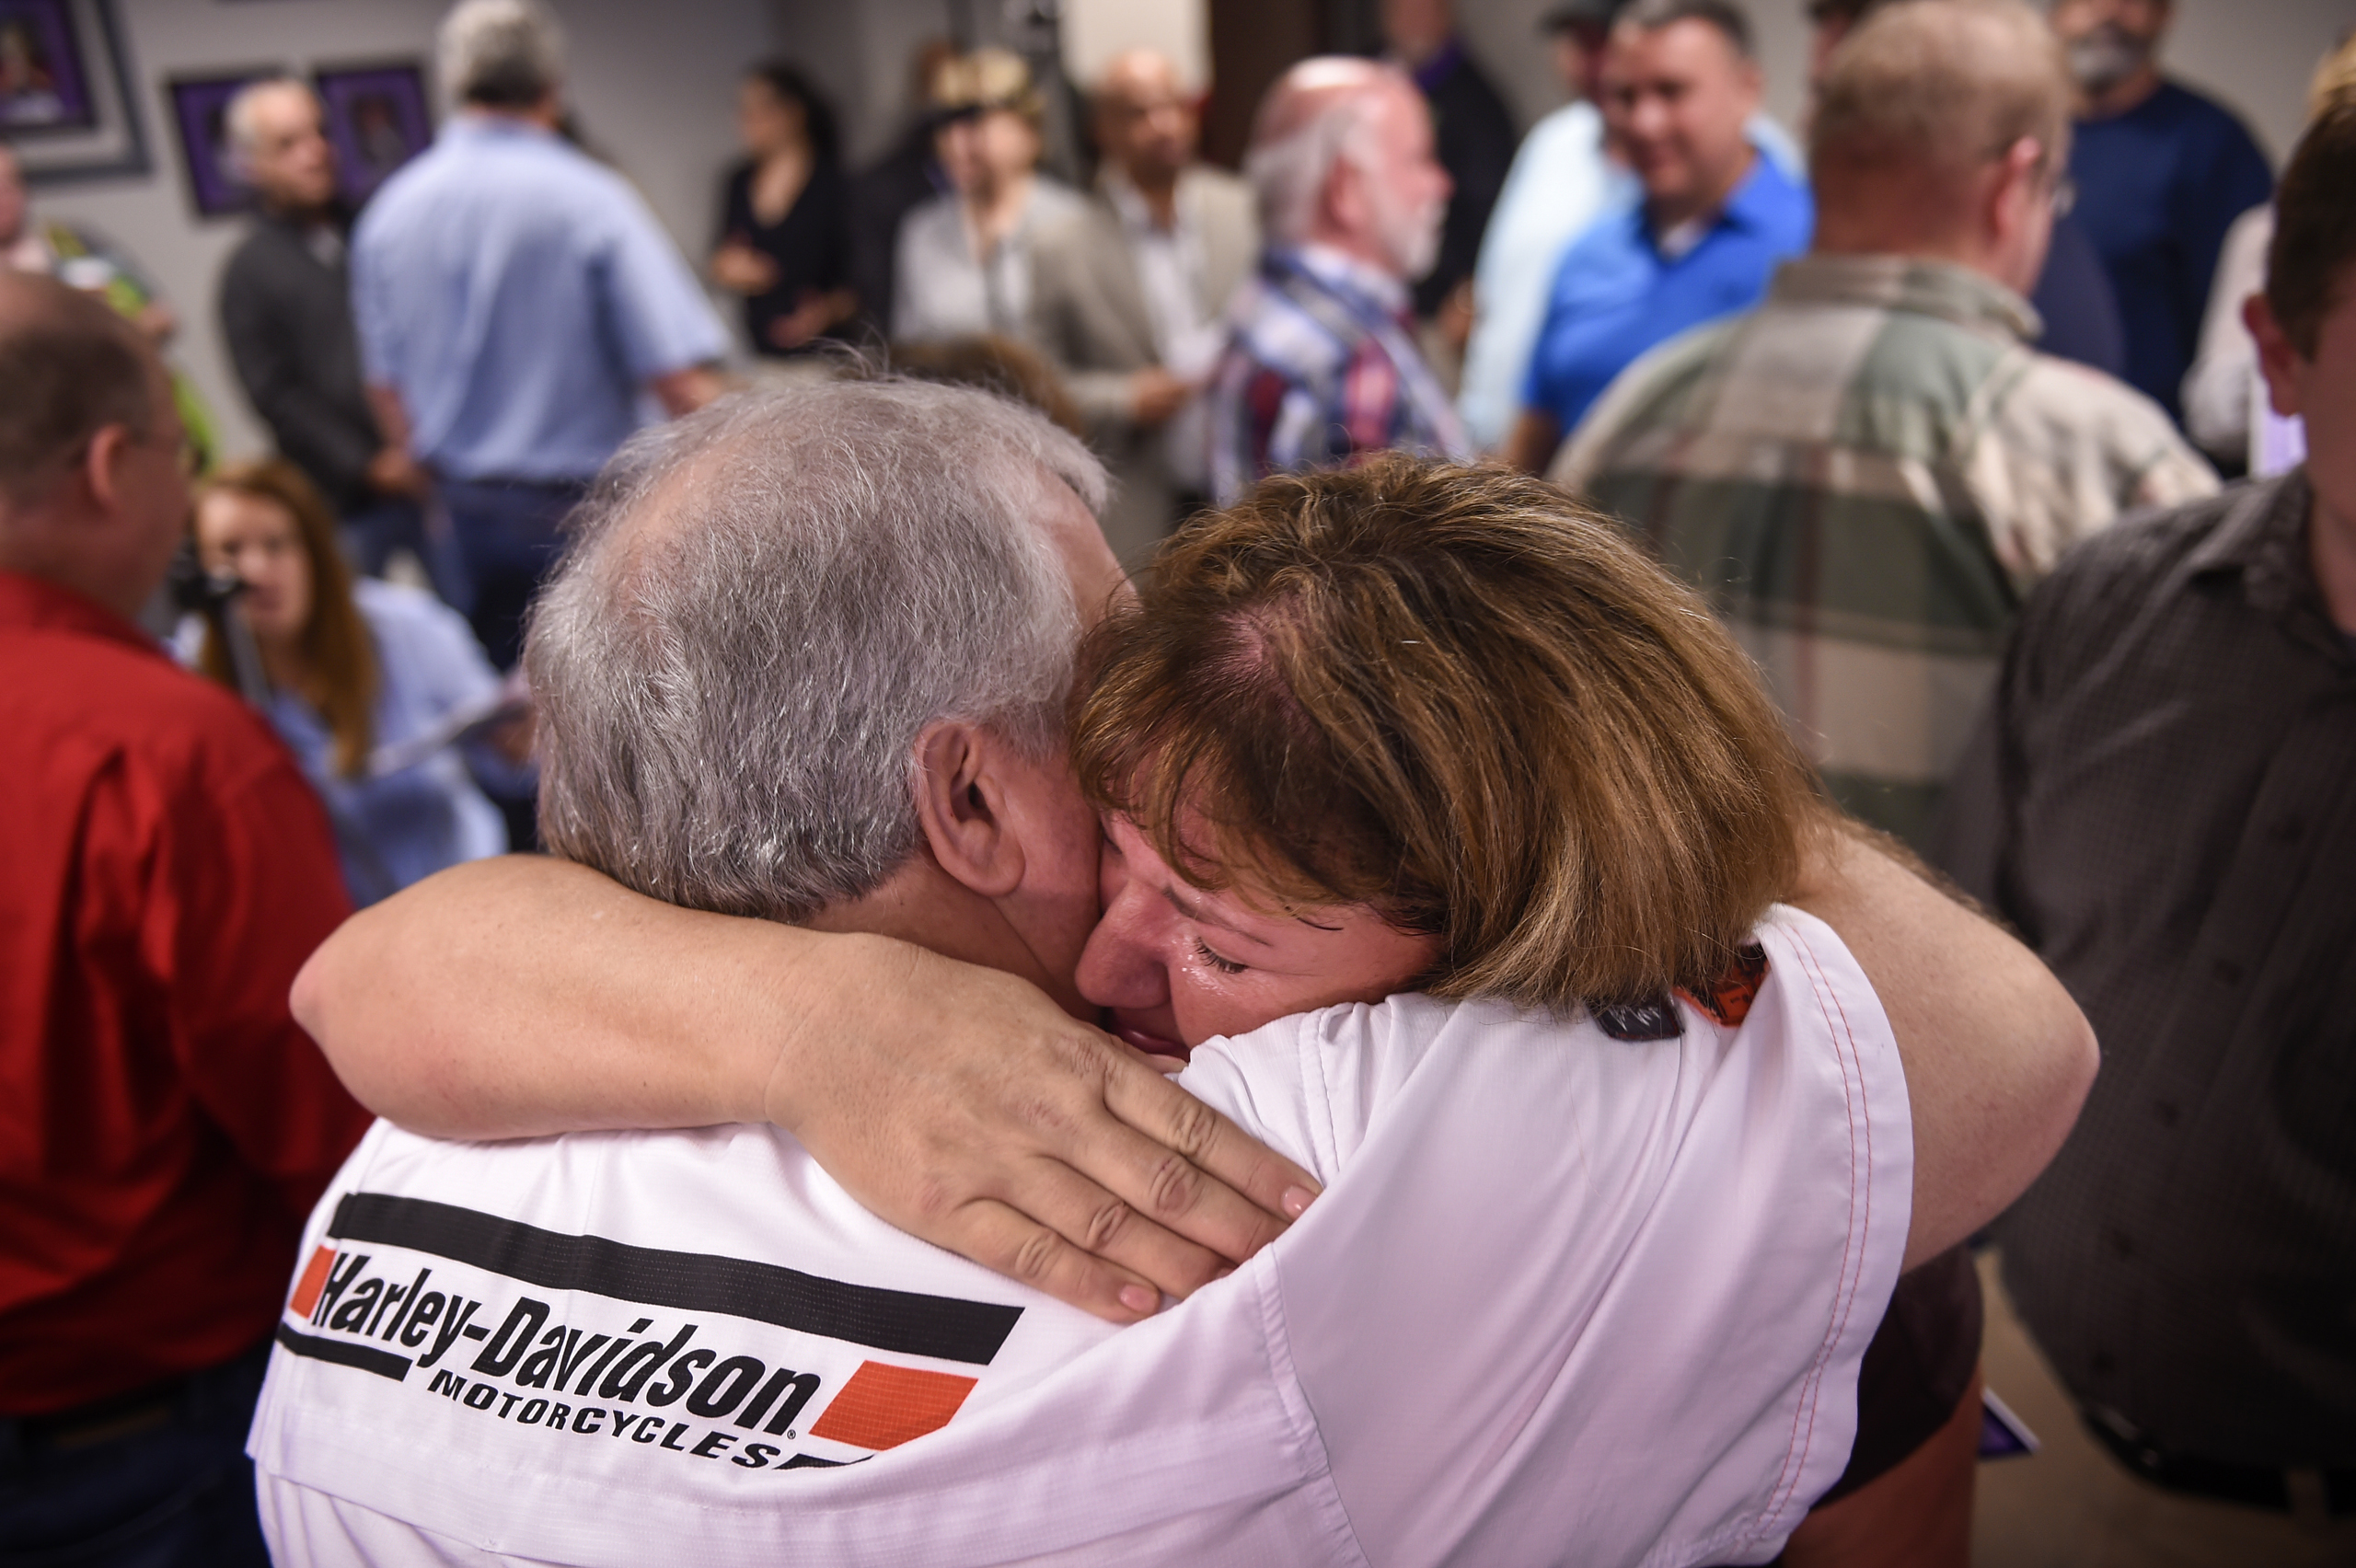 Amy O'Neal cries as she hugs co-worker and fellow lottery winner Larry Estes at the Tennessee Lottery Headquarters in Nashville, on Nov. 29, 2016. in Nashville.